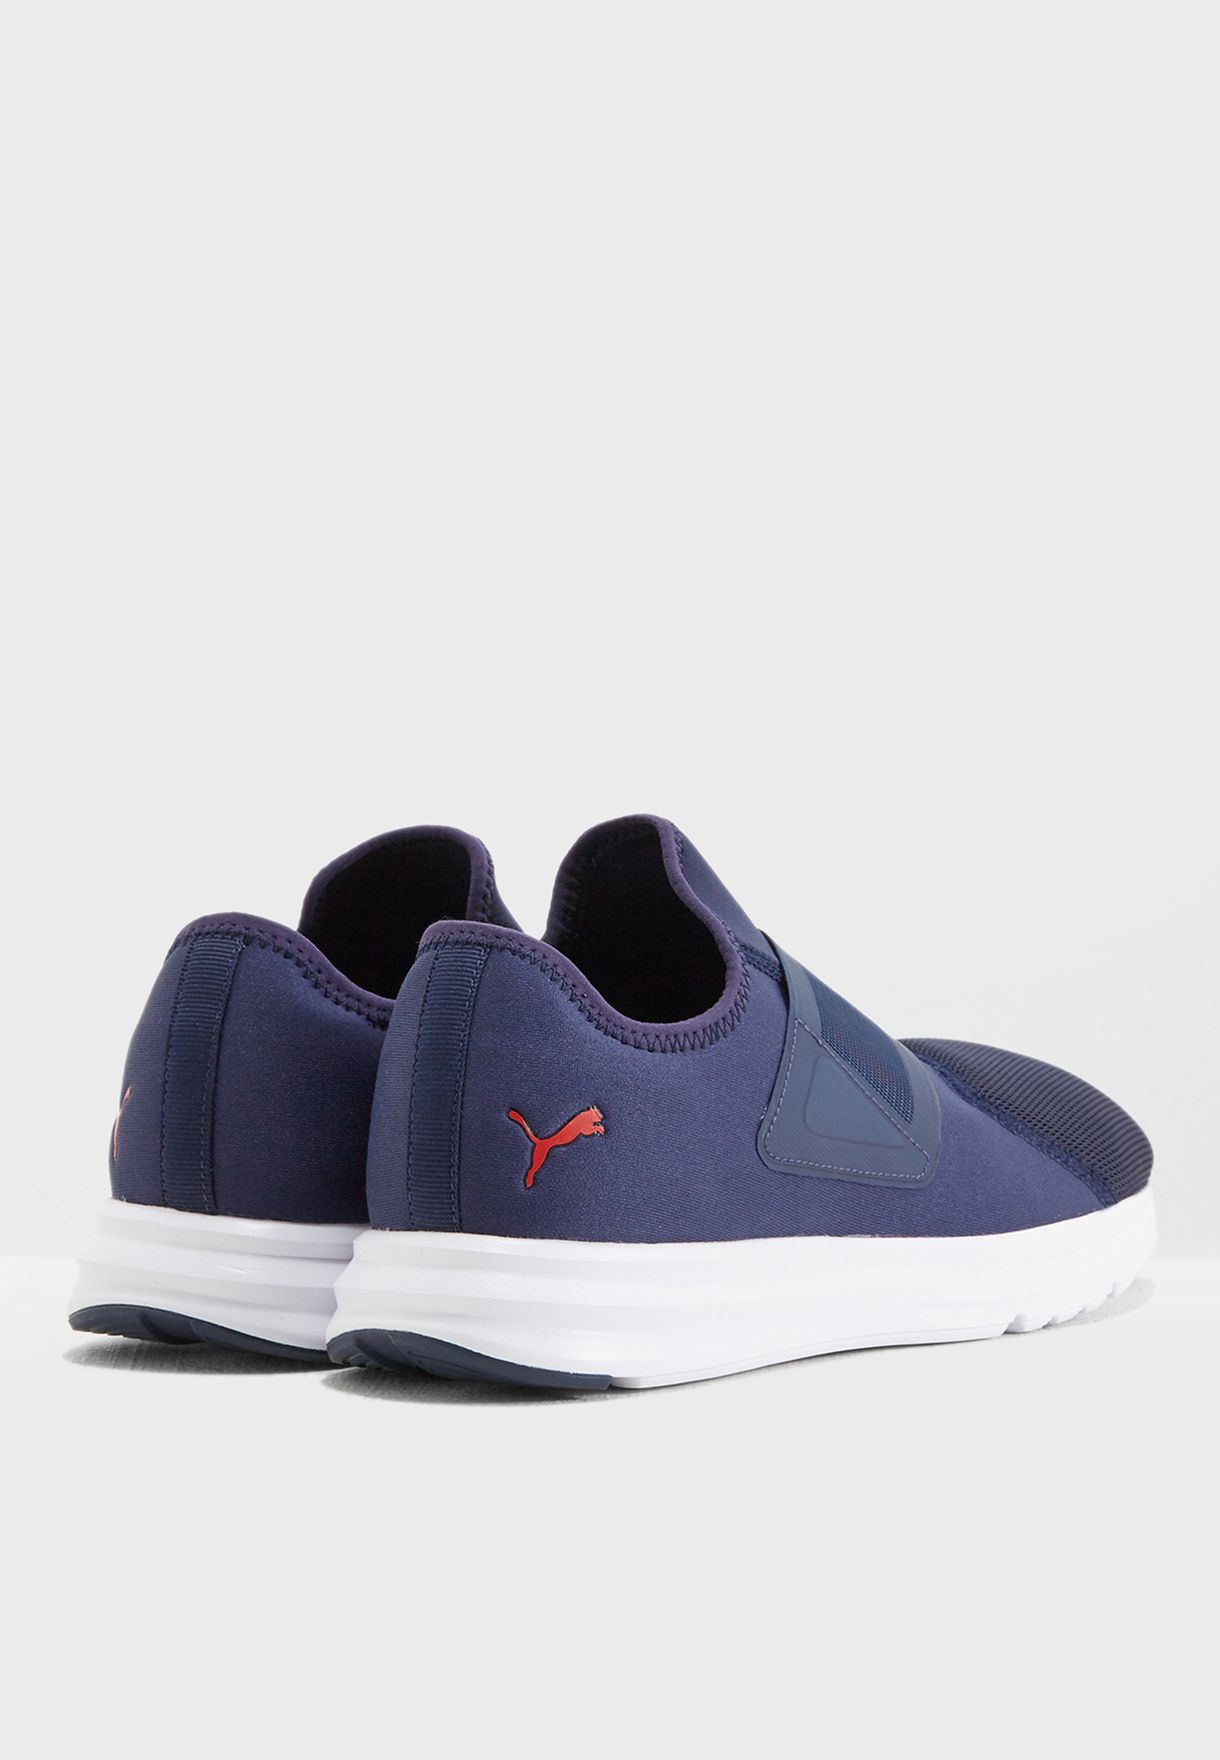 Influyente insecto Tradicional  Buy PUMA navy Enzo Strap 2 for Men in MENA, Worldwide | 19107202